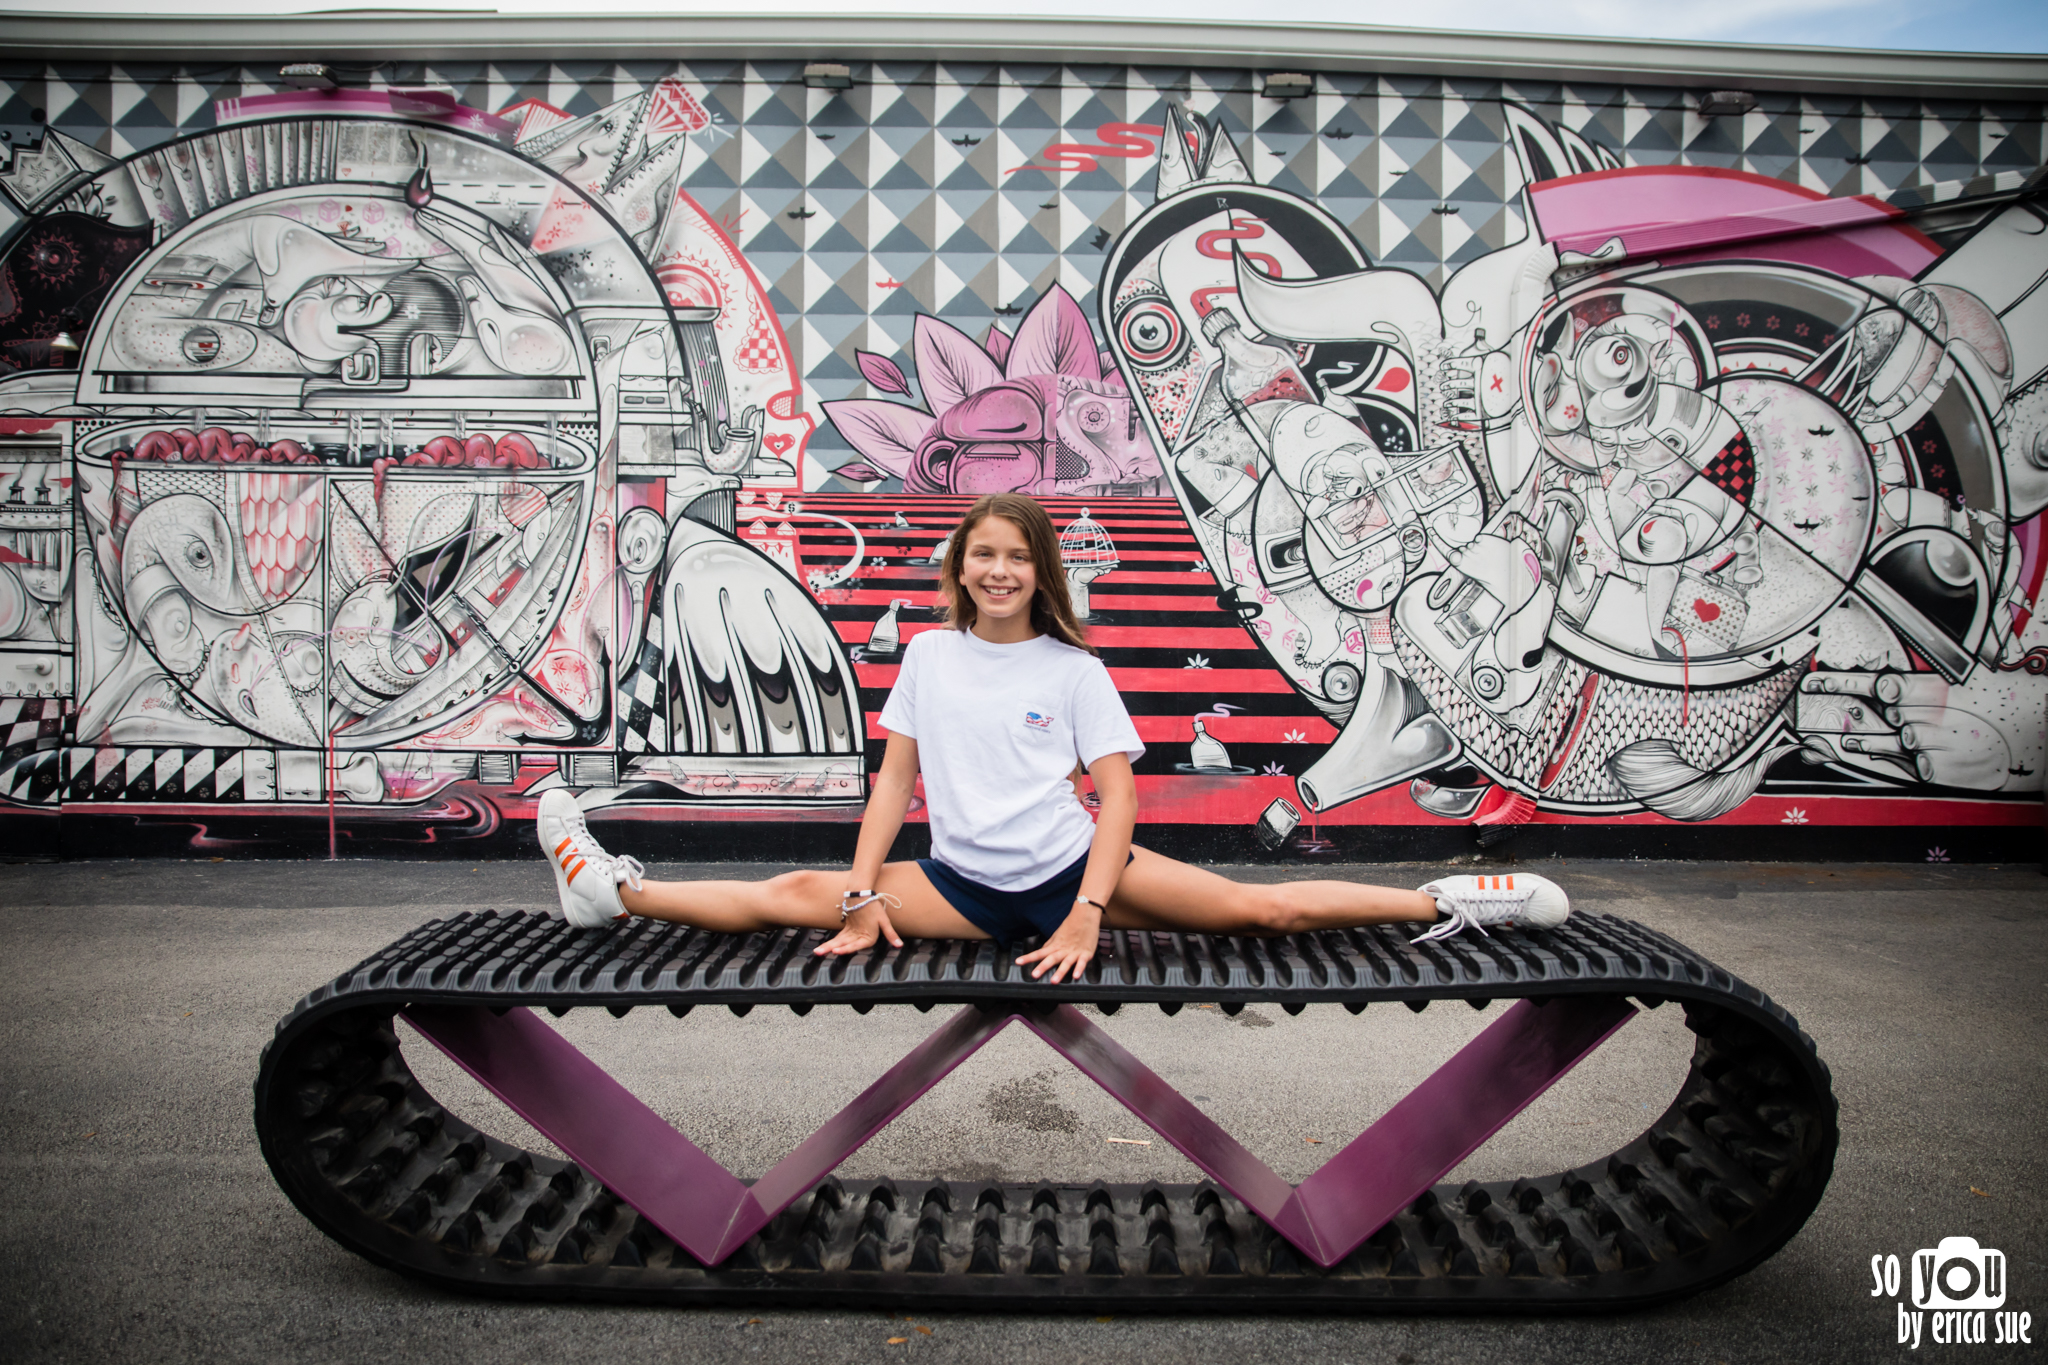 so-you-by-erica-sue-wynwood-walls-miami-photography-mitzvah-pre-shoot-5258.jpg